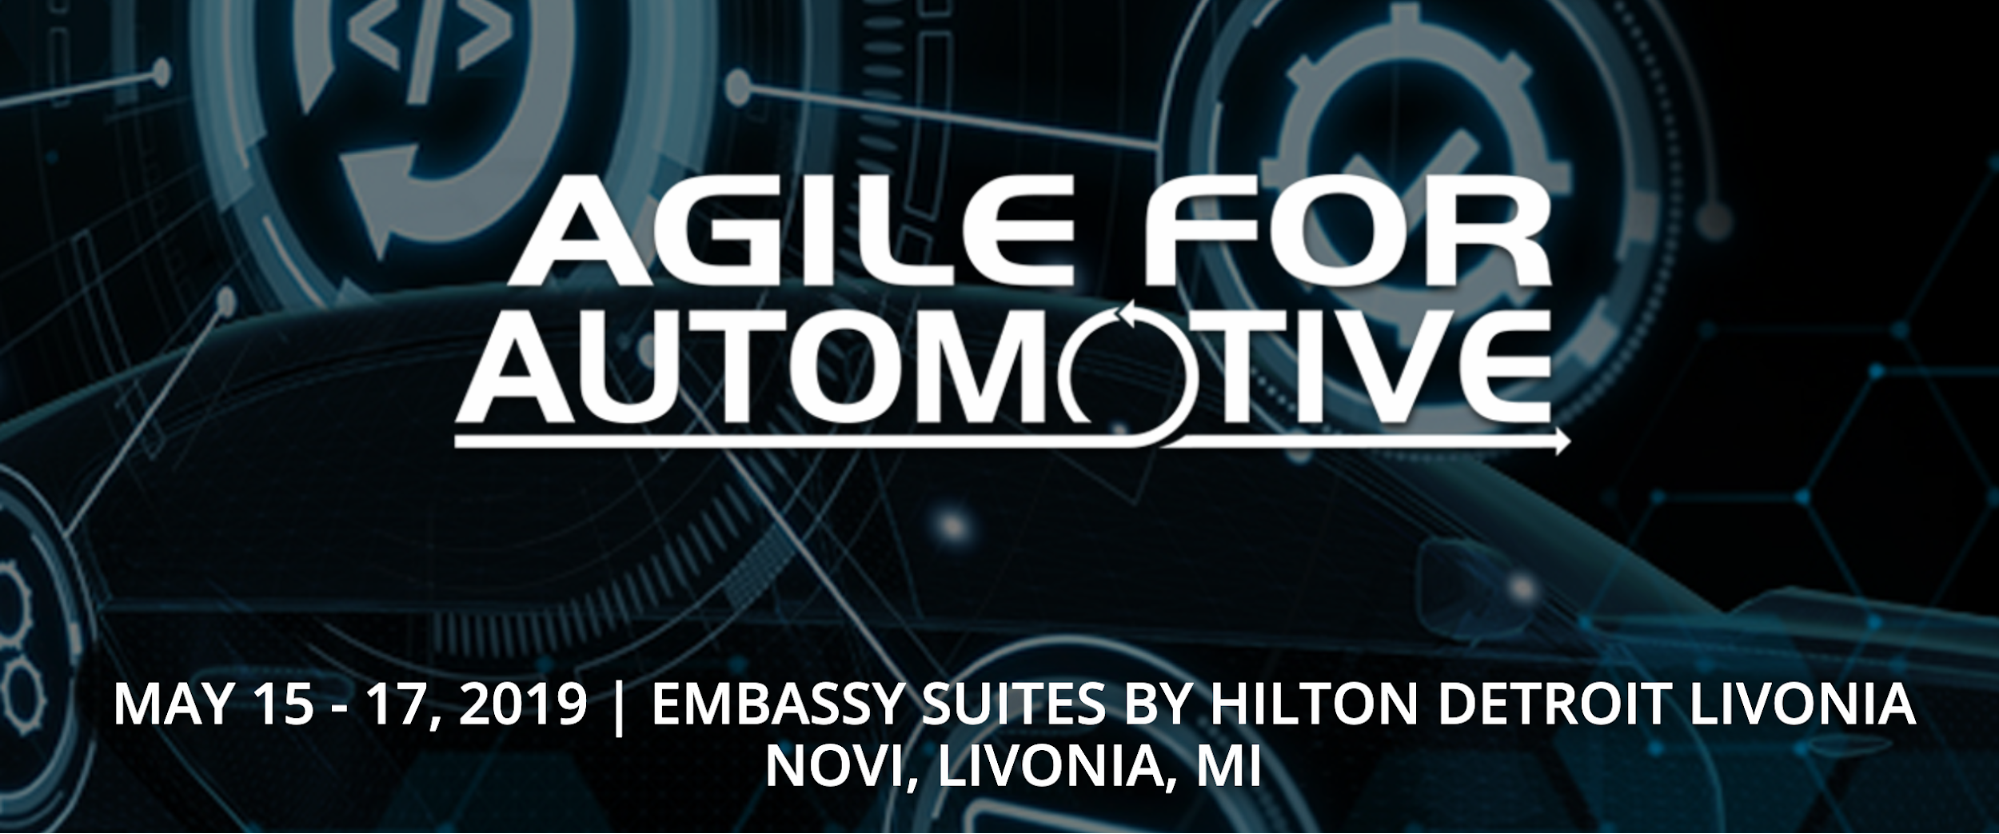 Agile for Automotive